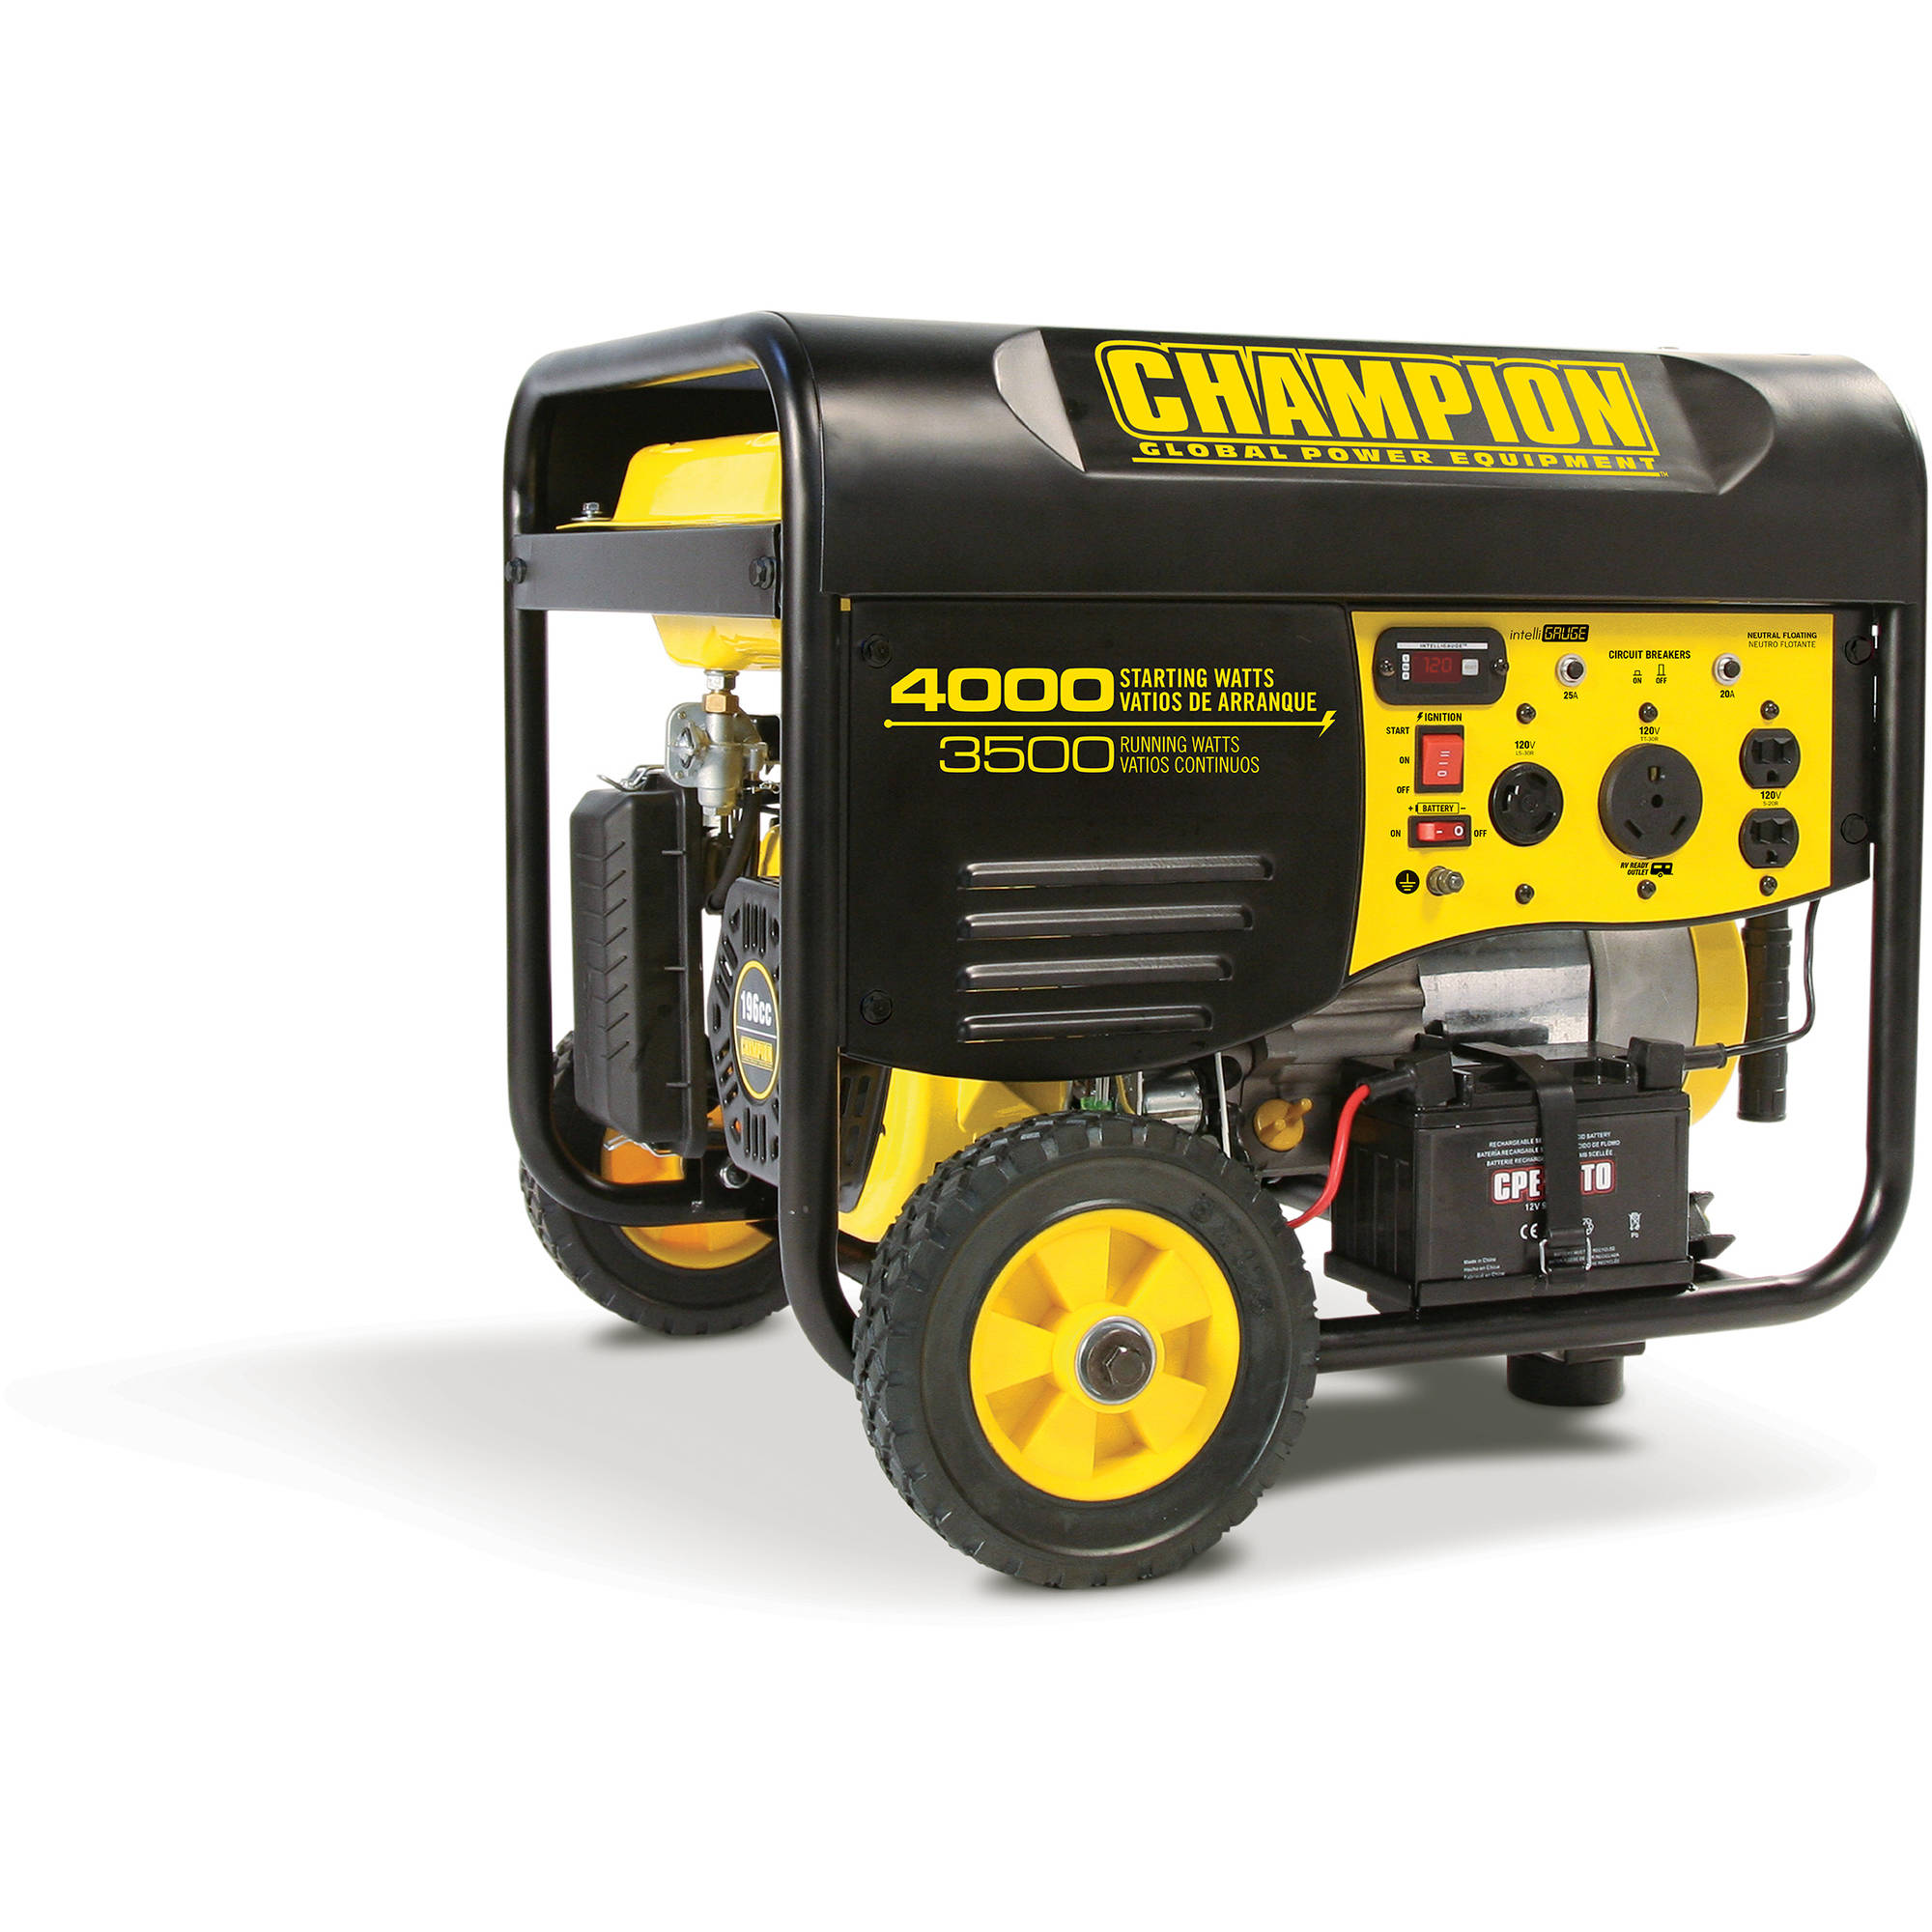 Champion 3500 Watt RV Ready Portable Generator Walmart